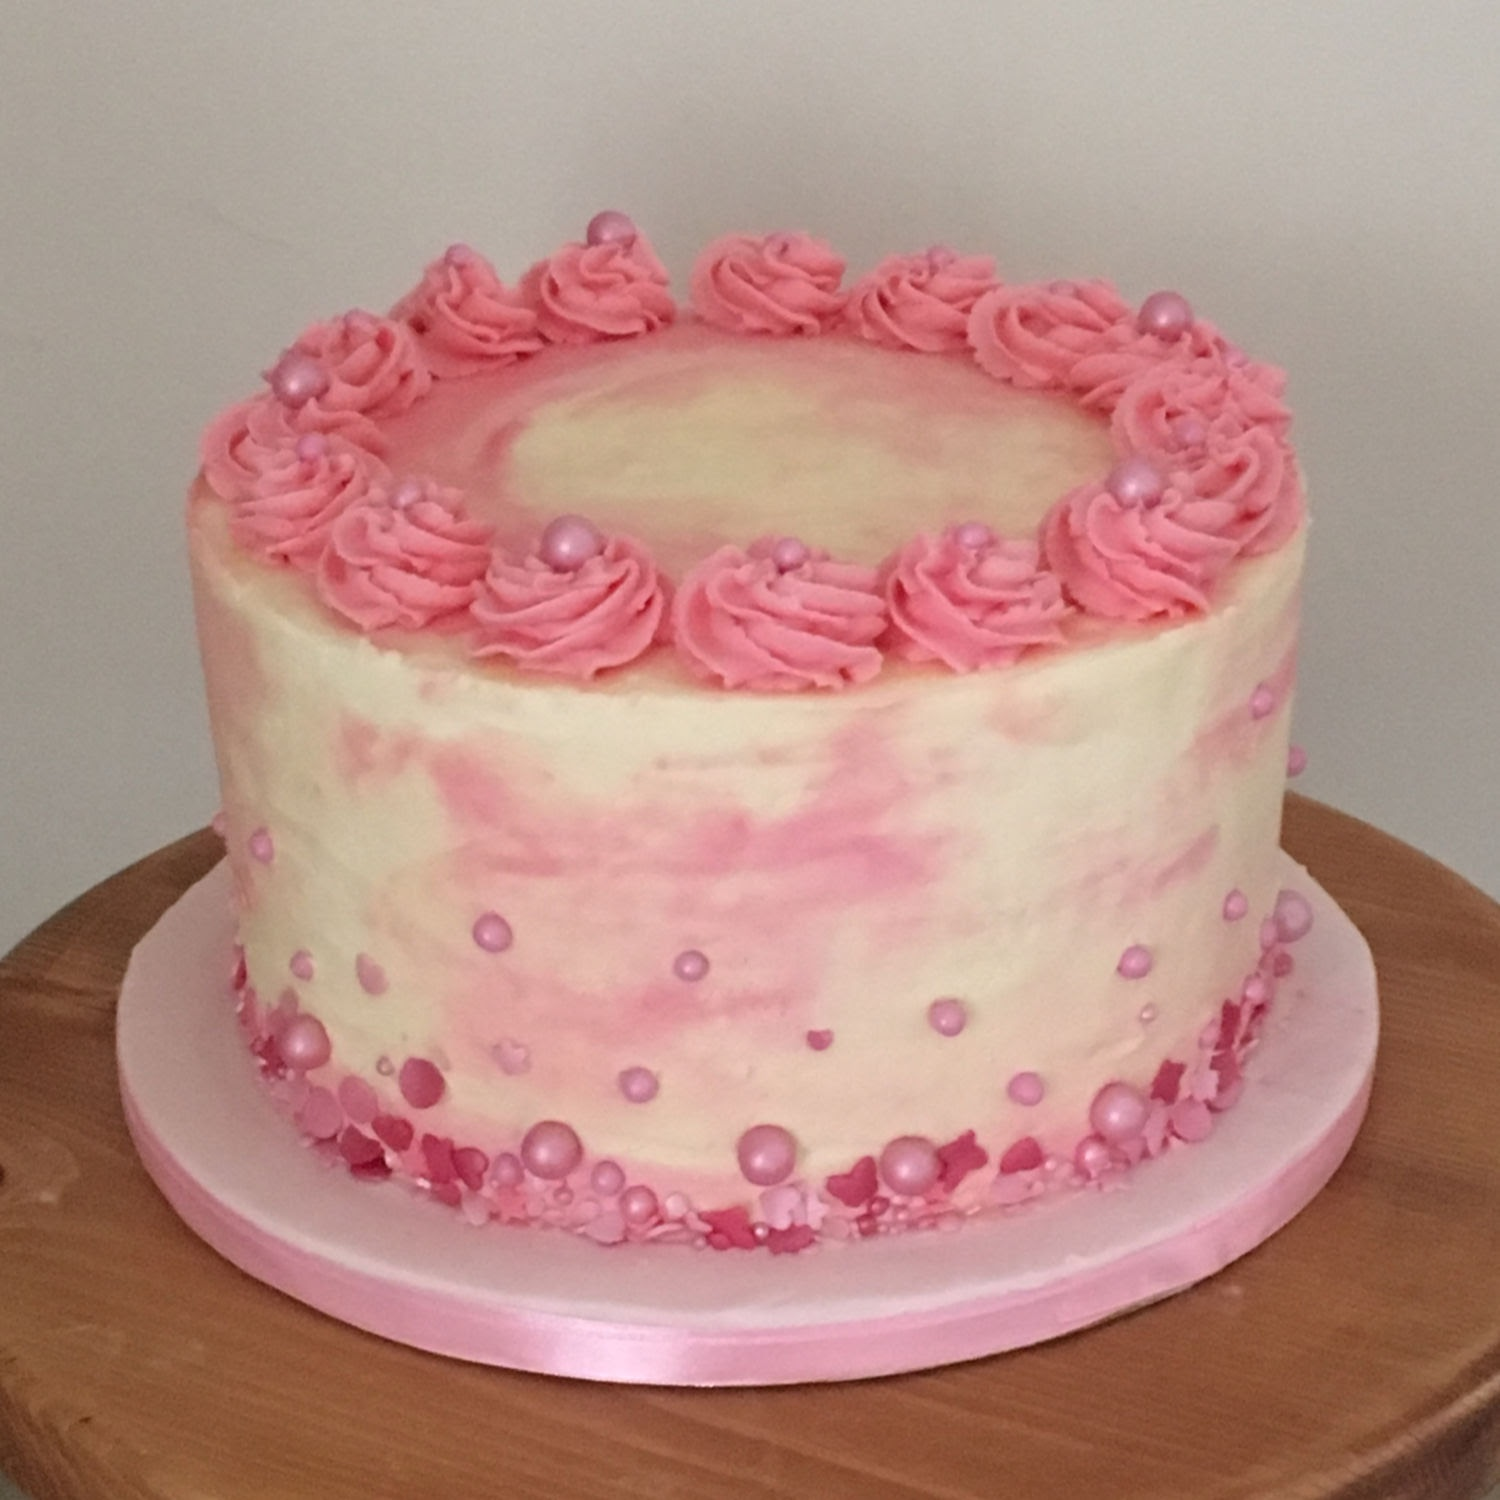 pinkwatercolourcakewithpearls